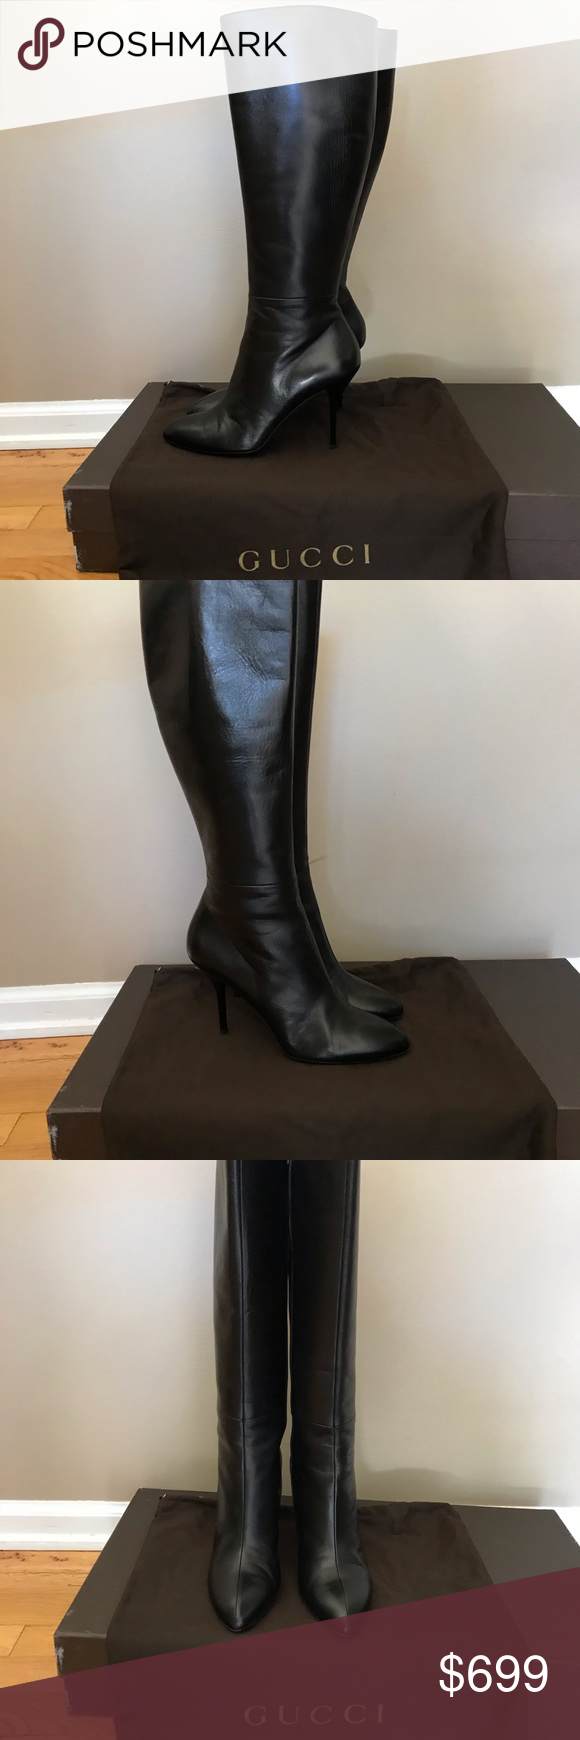 38be06bbb53 Spotted while shopping on Poshmark  Gucci Nappa Steve smooth Black Leather  boots sz 40!  poshmark  fashion  shopping  style  Gucci  Shoes